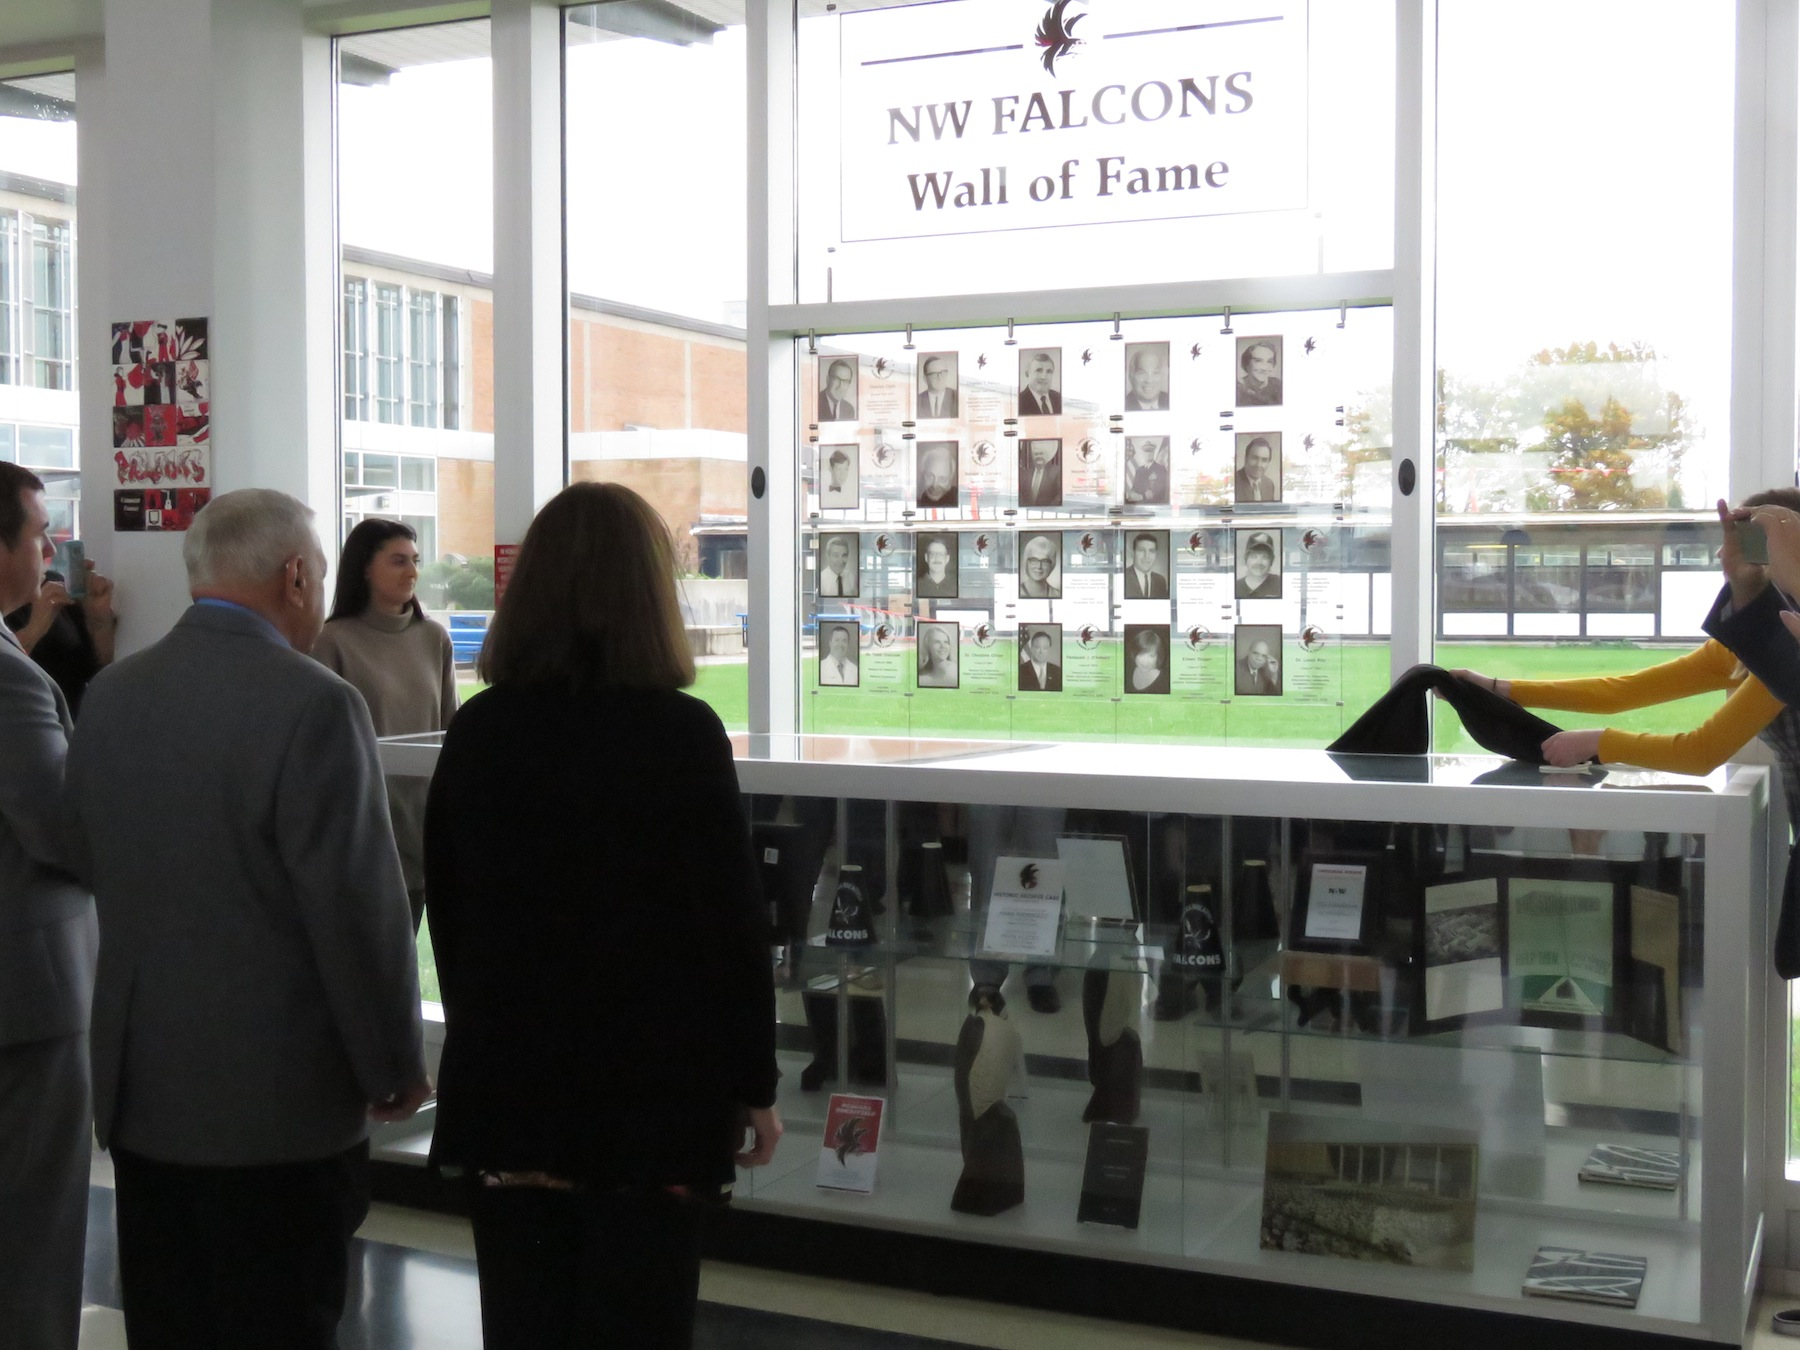 Newly inducted members see their faces on the Falcon Wall of Fame. (Photos by David Yarger)